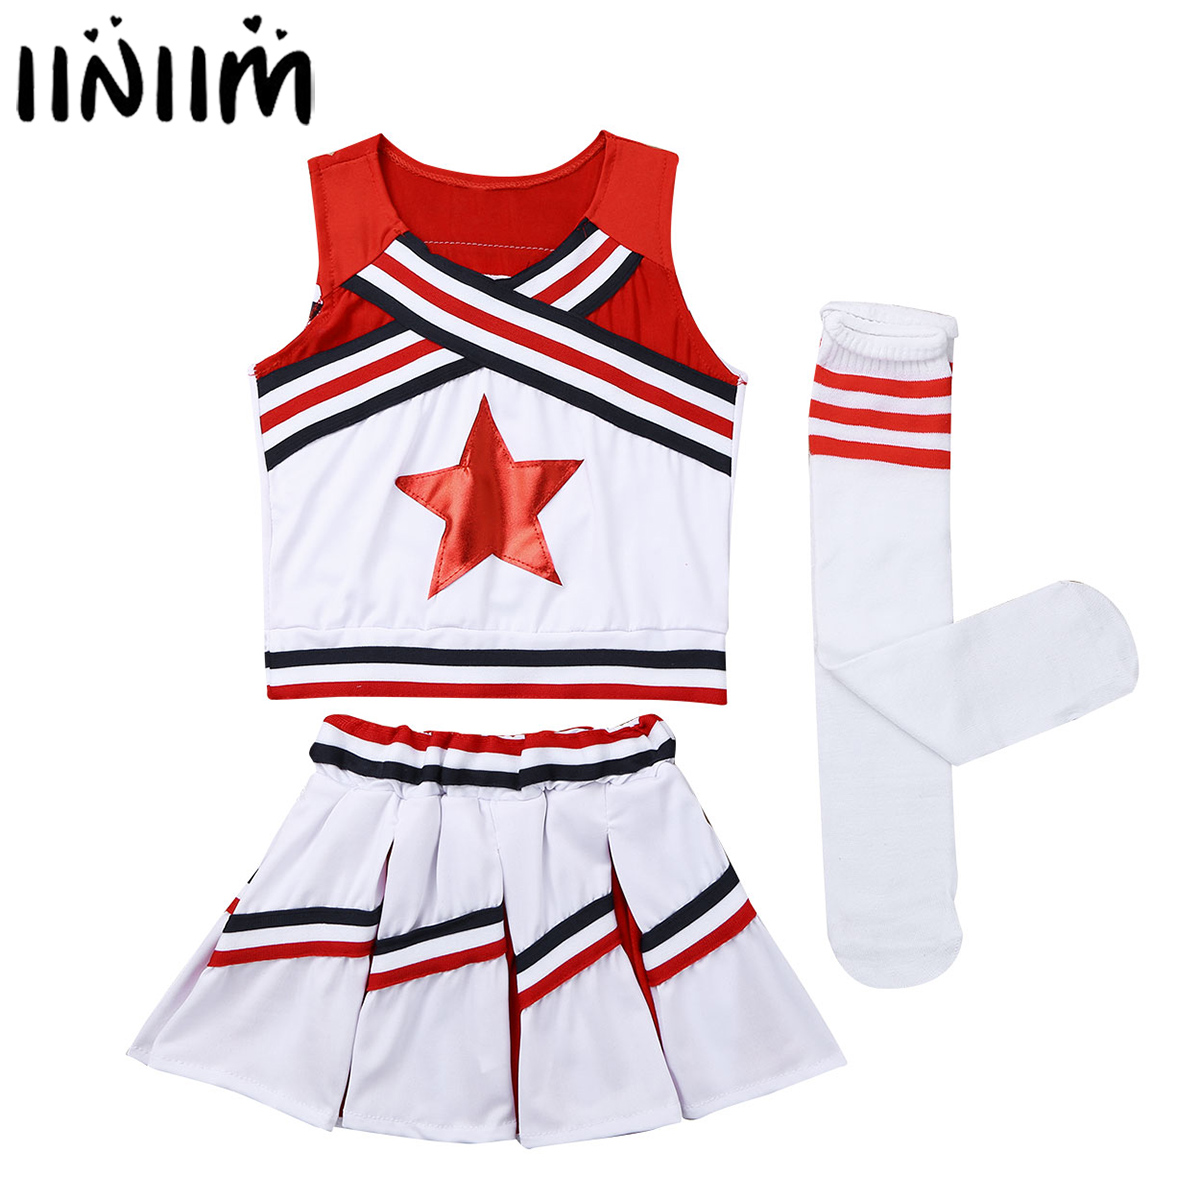 iiniim Kids Girls Cheerleader Costume Red Star Applique Tops with Skirt Socks Dancewear for Halloween Cosplay Party Dance Wear